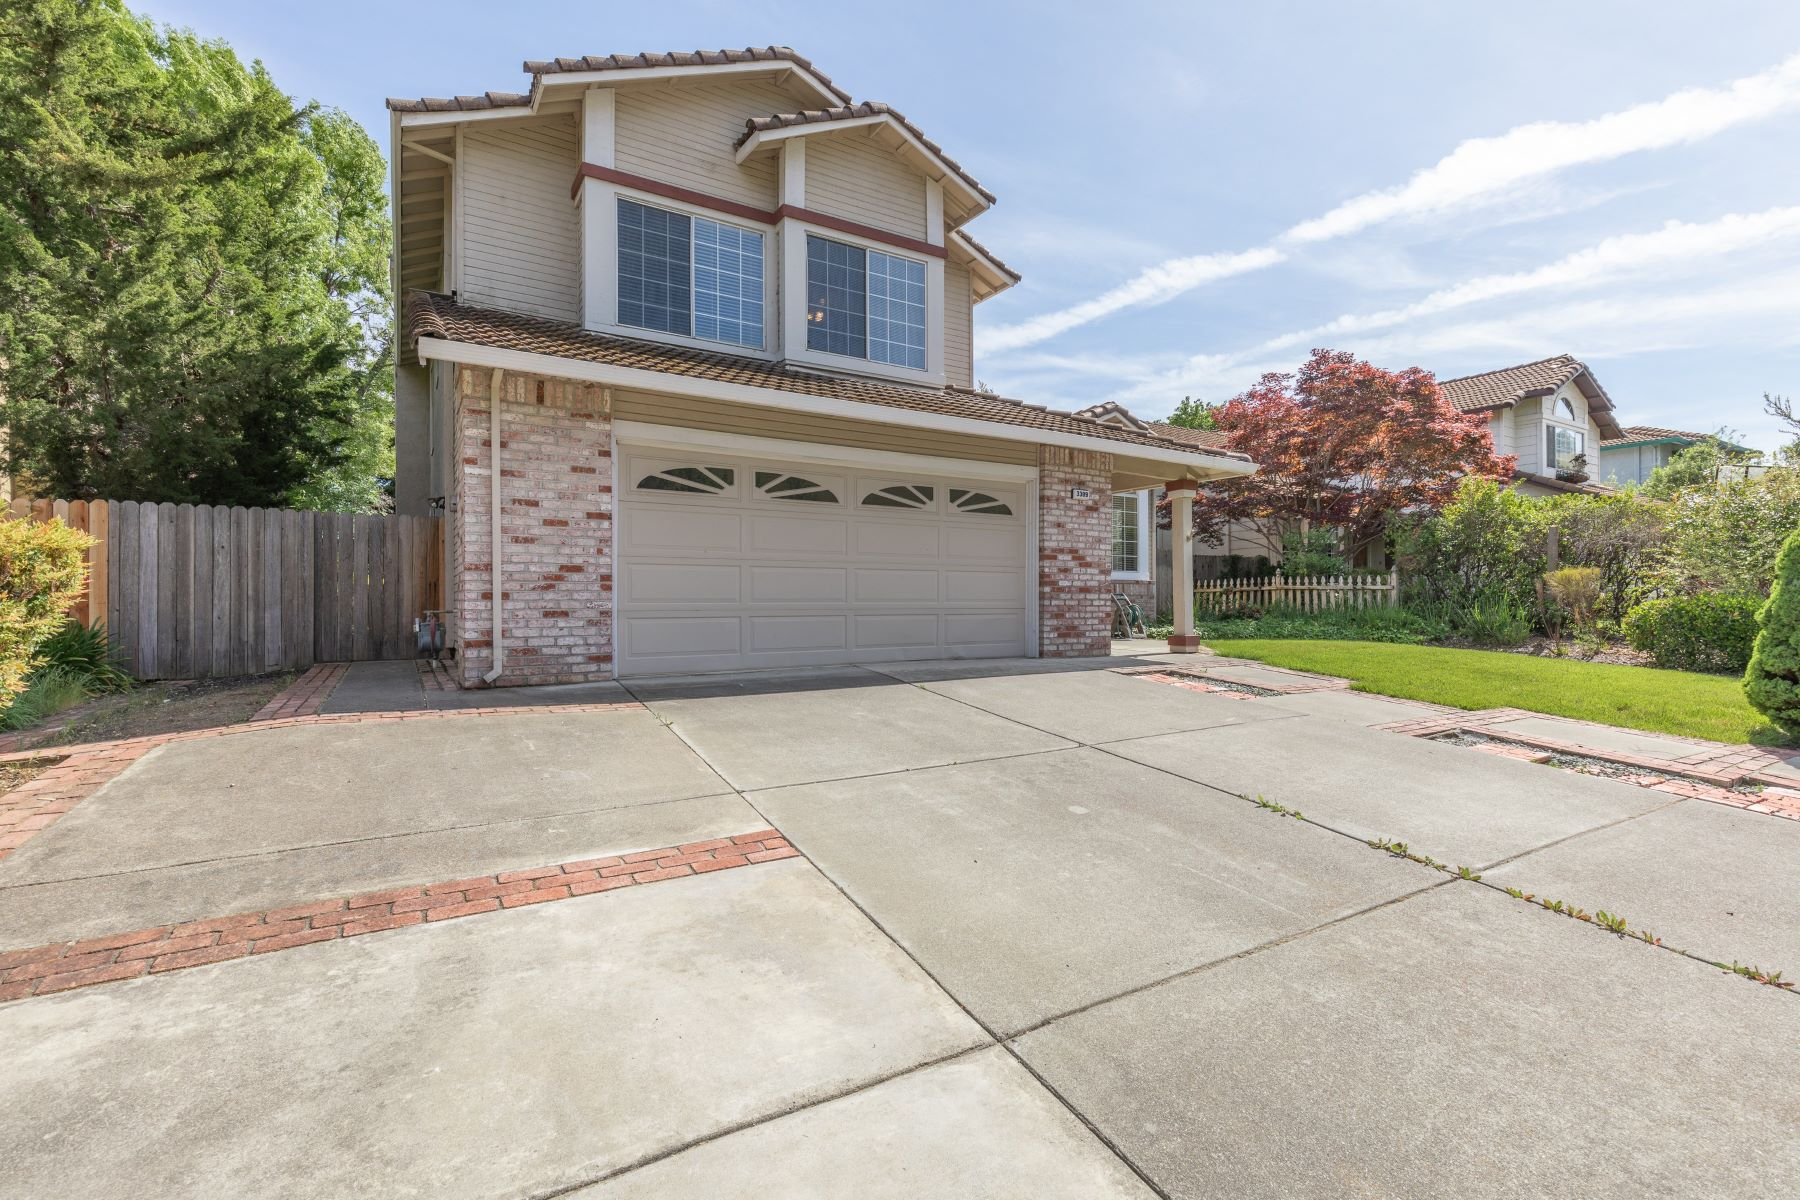 Single Family Homes for Active at Live the Affordable Country Club Lifestyle 3309 Whitemarsh Lane Fairfield, California 94534 United States